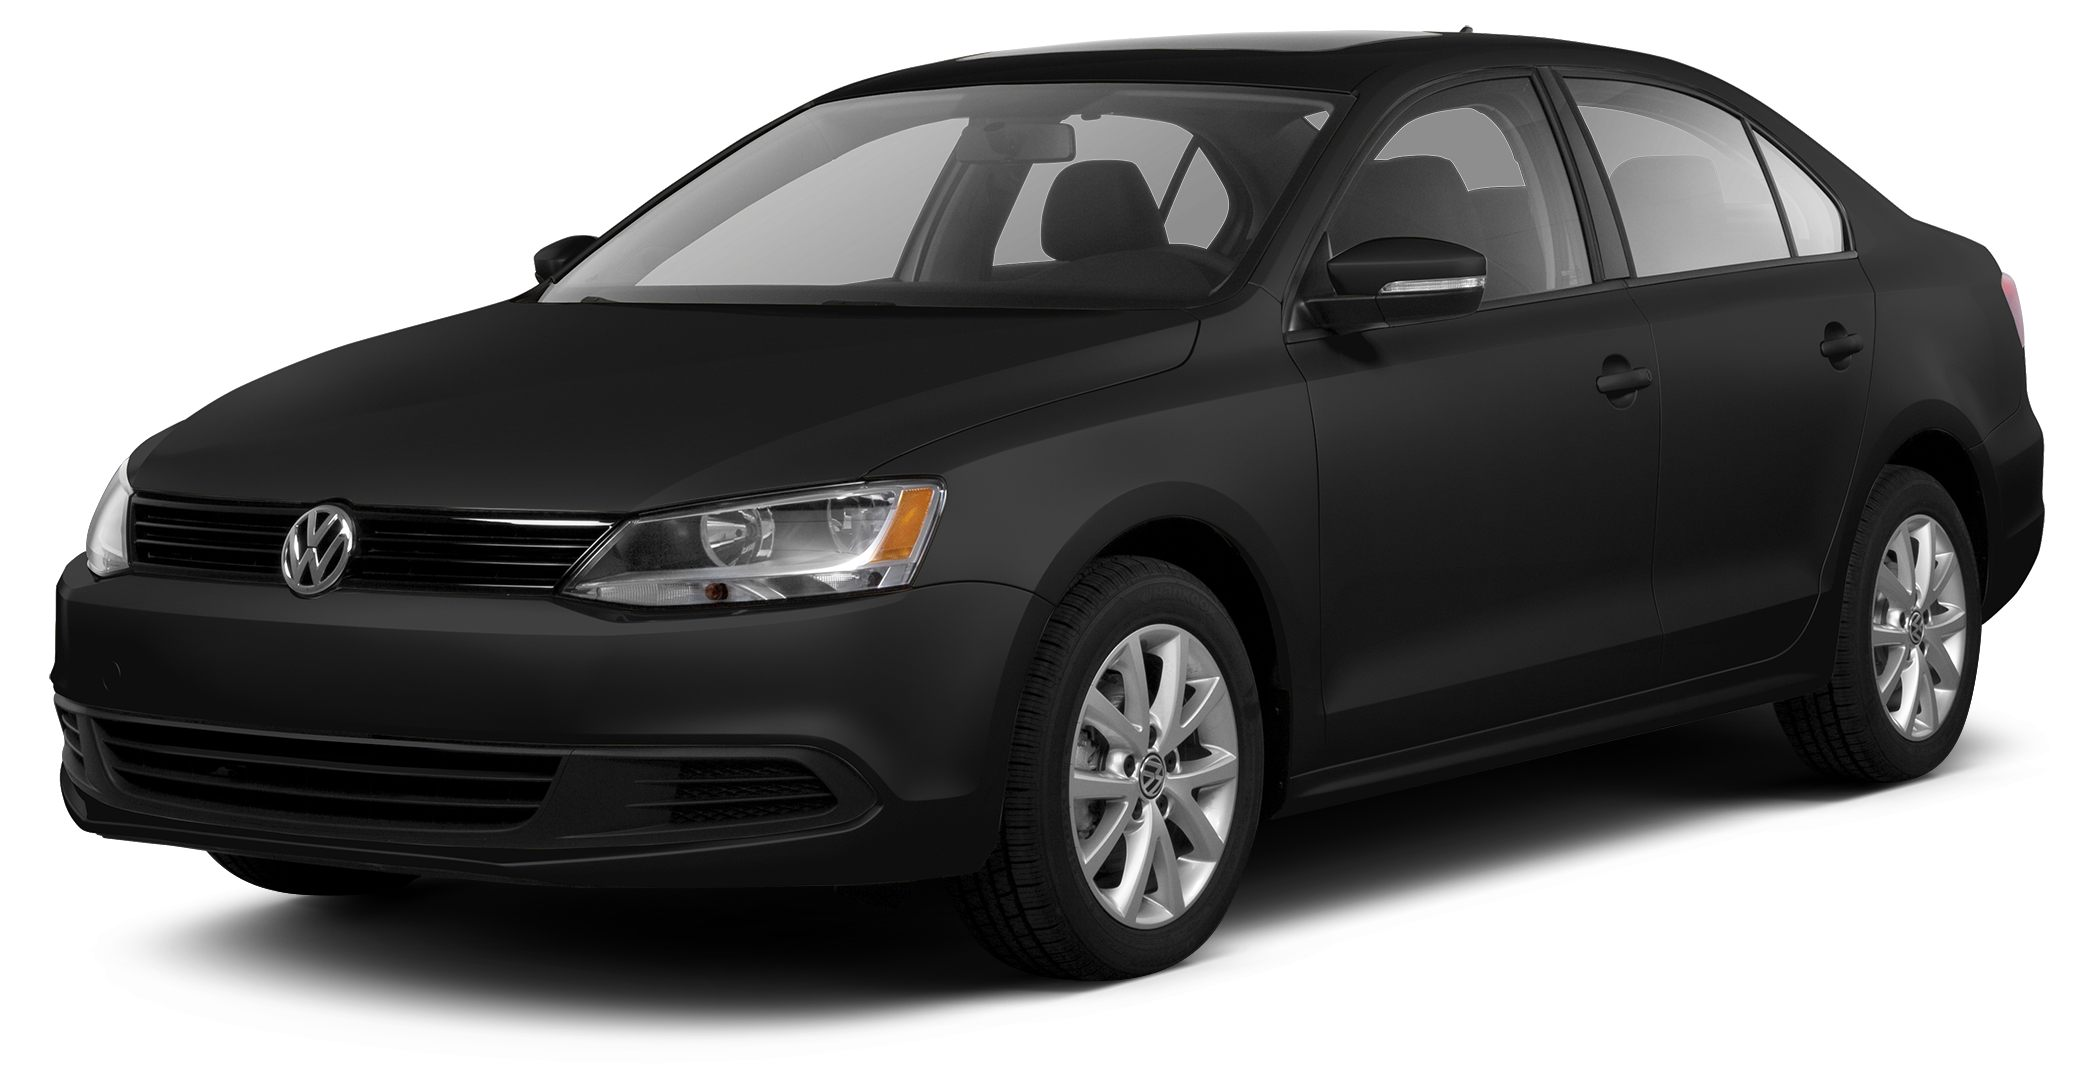 2013 Volkswagen Jetta 25 SE With a moon roof comfort LEATHER heated seats  alloy wheels remote